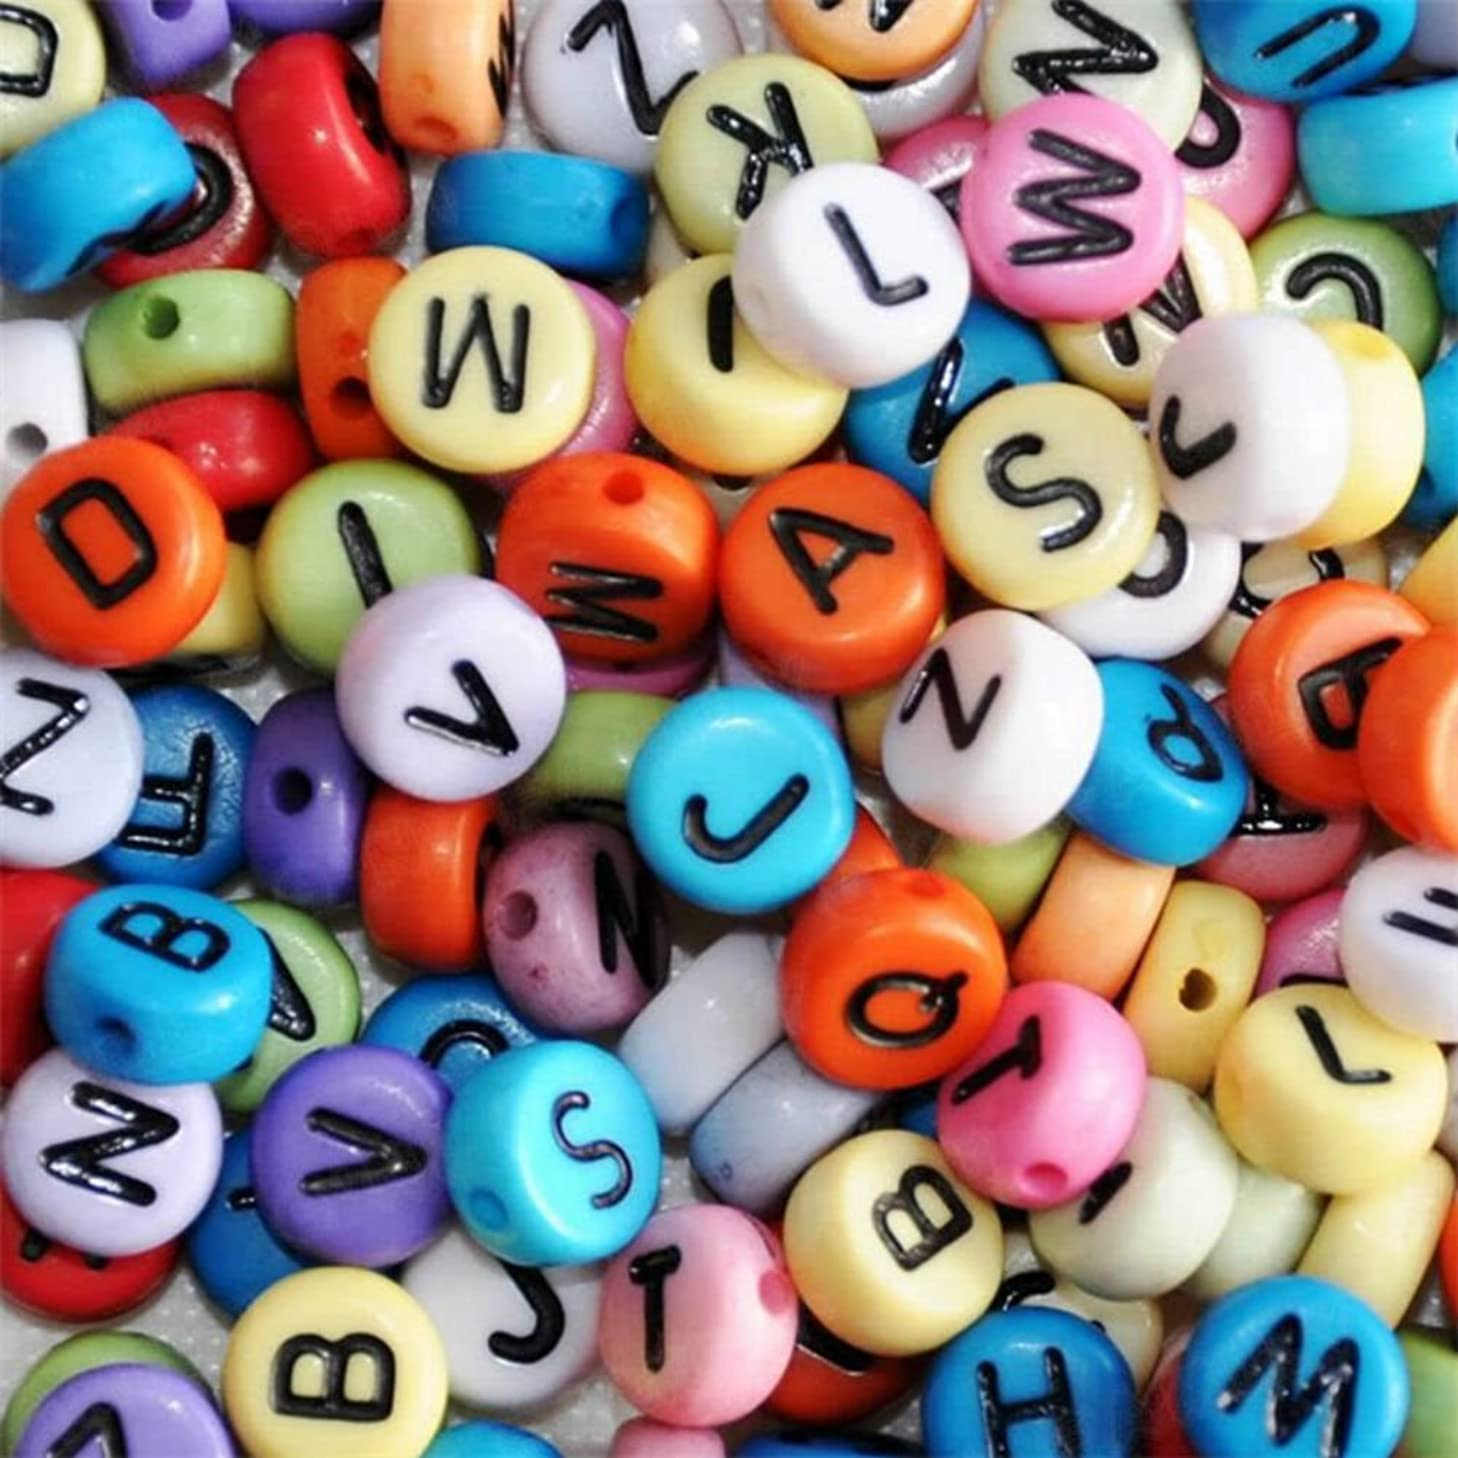 AKOAK Pack of 200 Mixed 4 x 7 mm Round Colorized Acrylic Plastic Beads with Black Letters/ Alphabet Letter